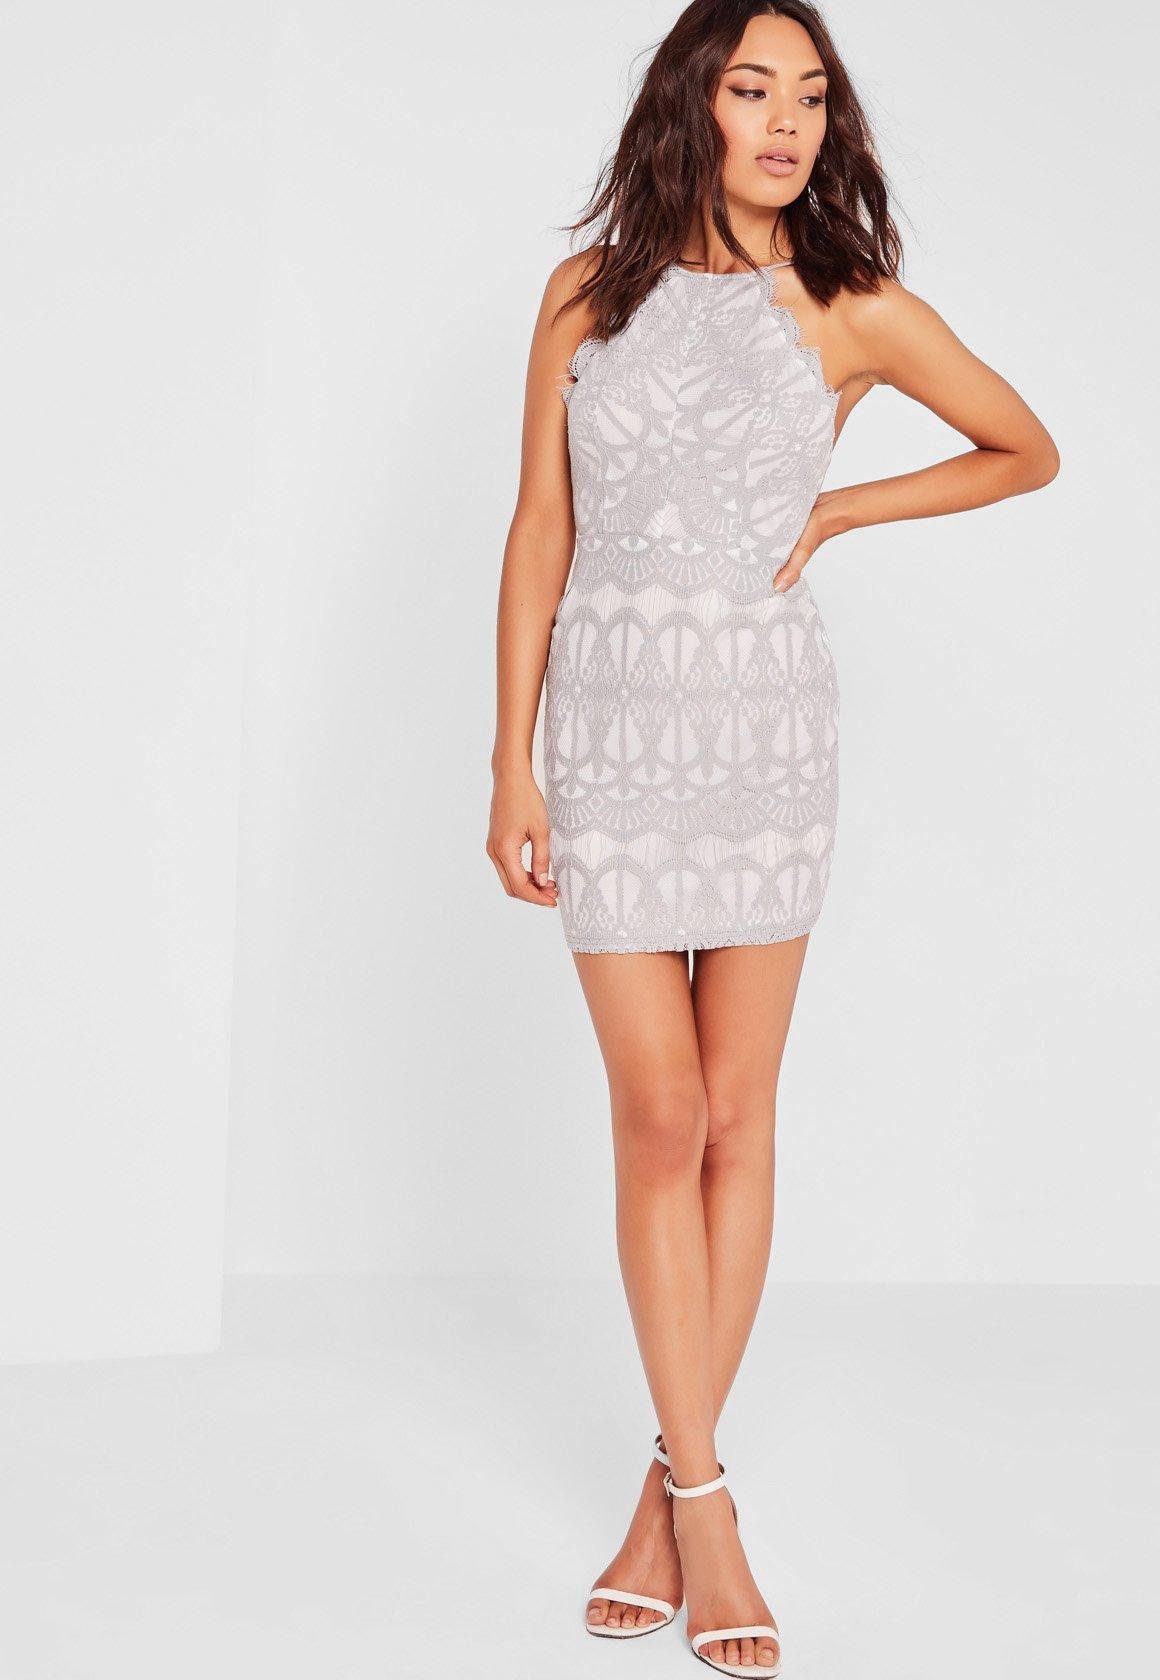 Lyst - Missguided Lace Strappy Bodycon Dress Grey in Gray ...